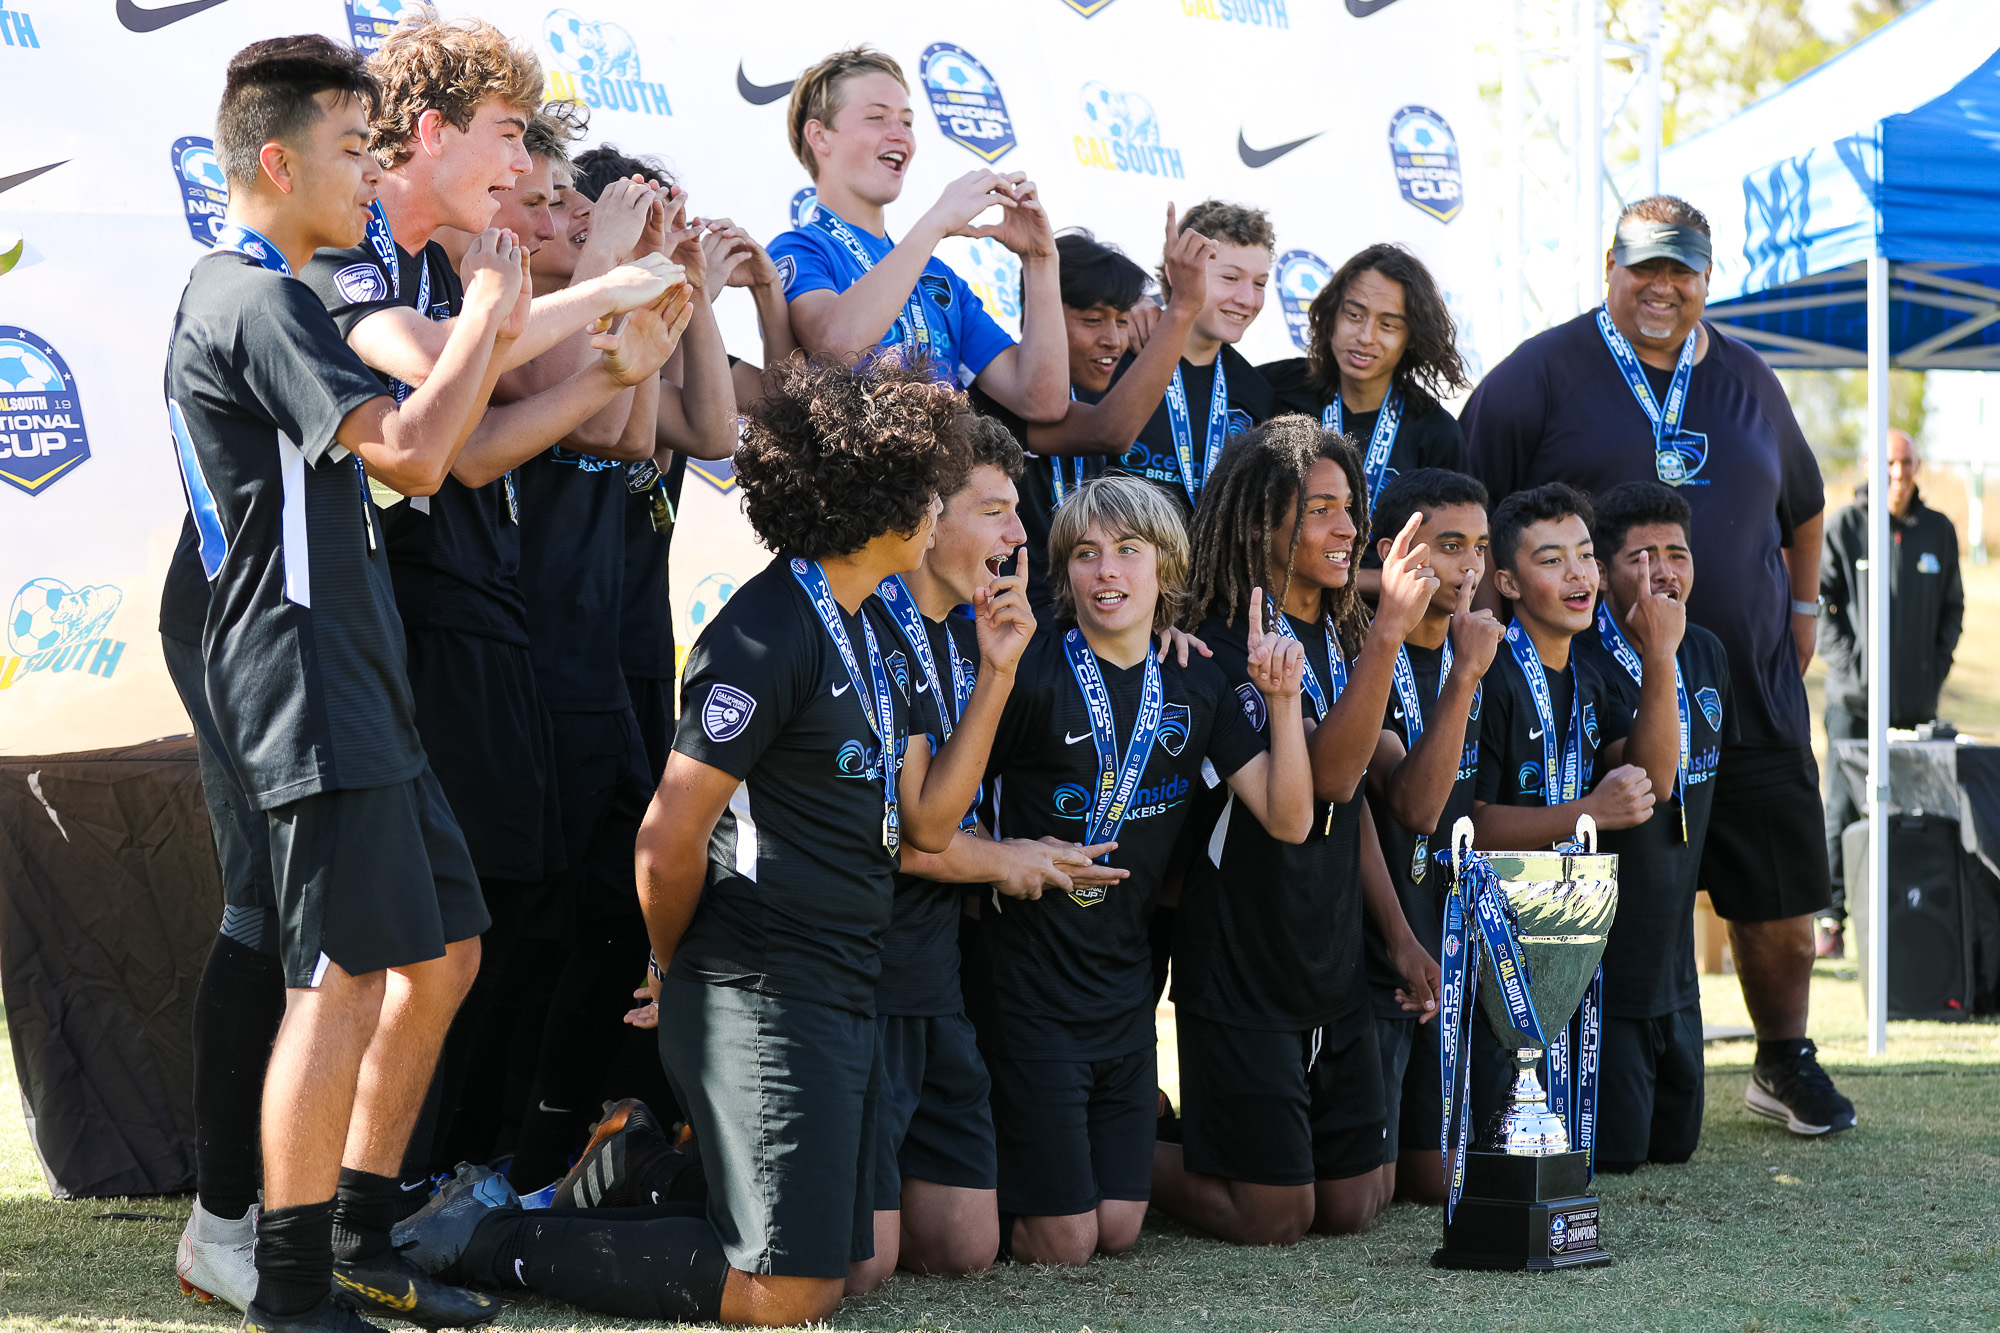 Oceanside Breakers Win Their First Boys National Cup Championship #BreakerMade